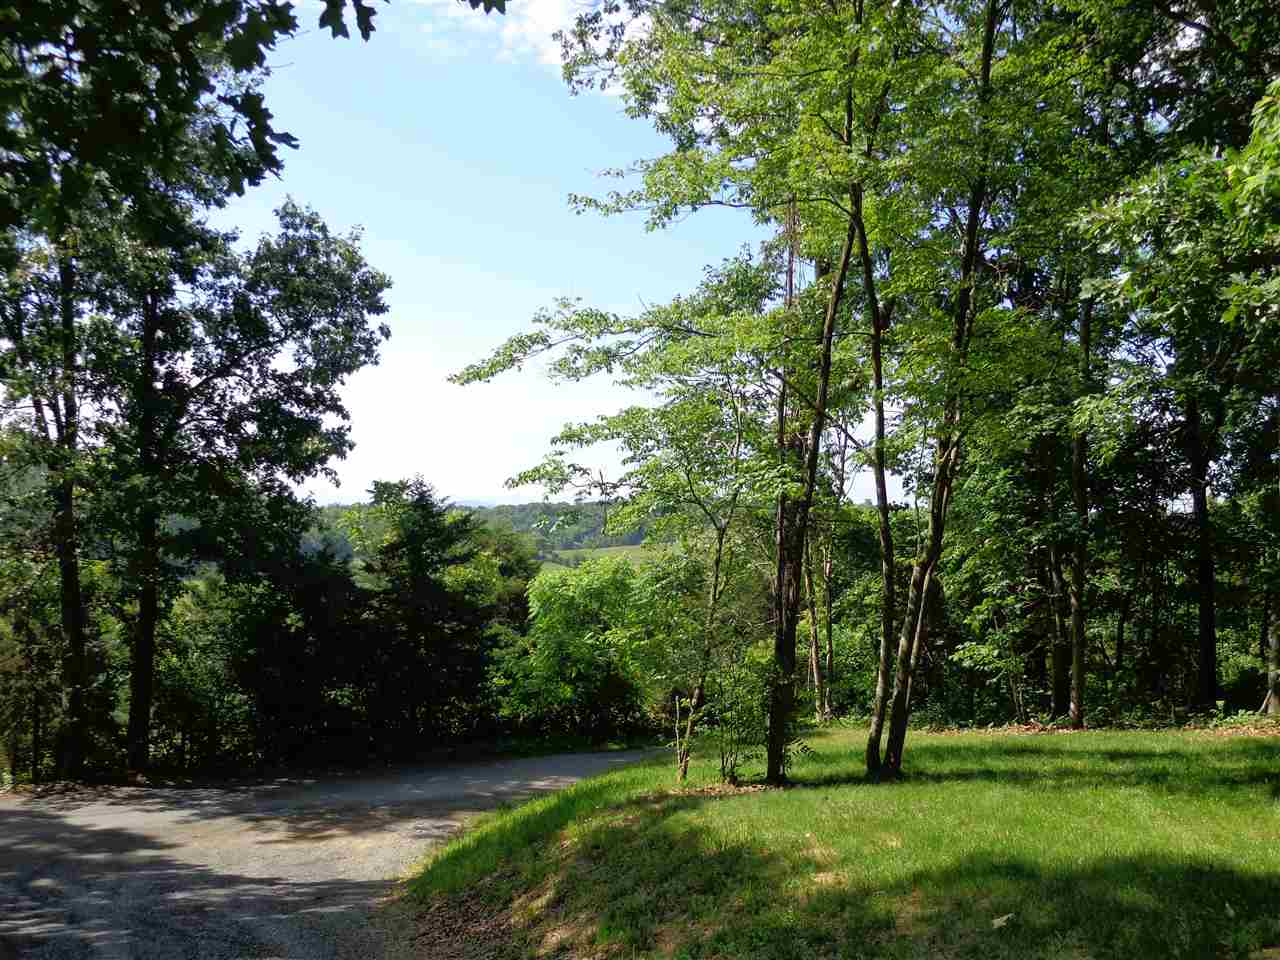 Image of Acreage for Sale near Mount Solon, Virginia, in Augusta county: 1.00 acres